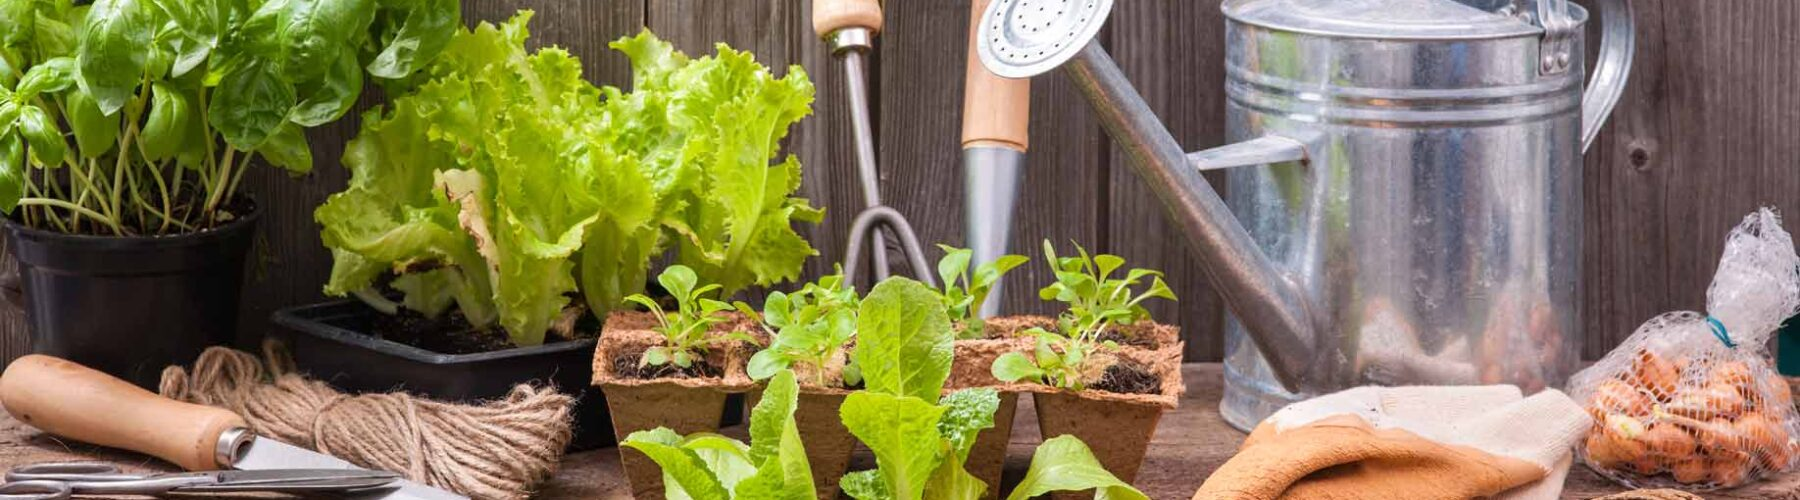 How to Start Your Garden: 4 Best Tips from Lawn and Landscape Experts